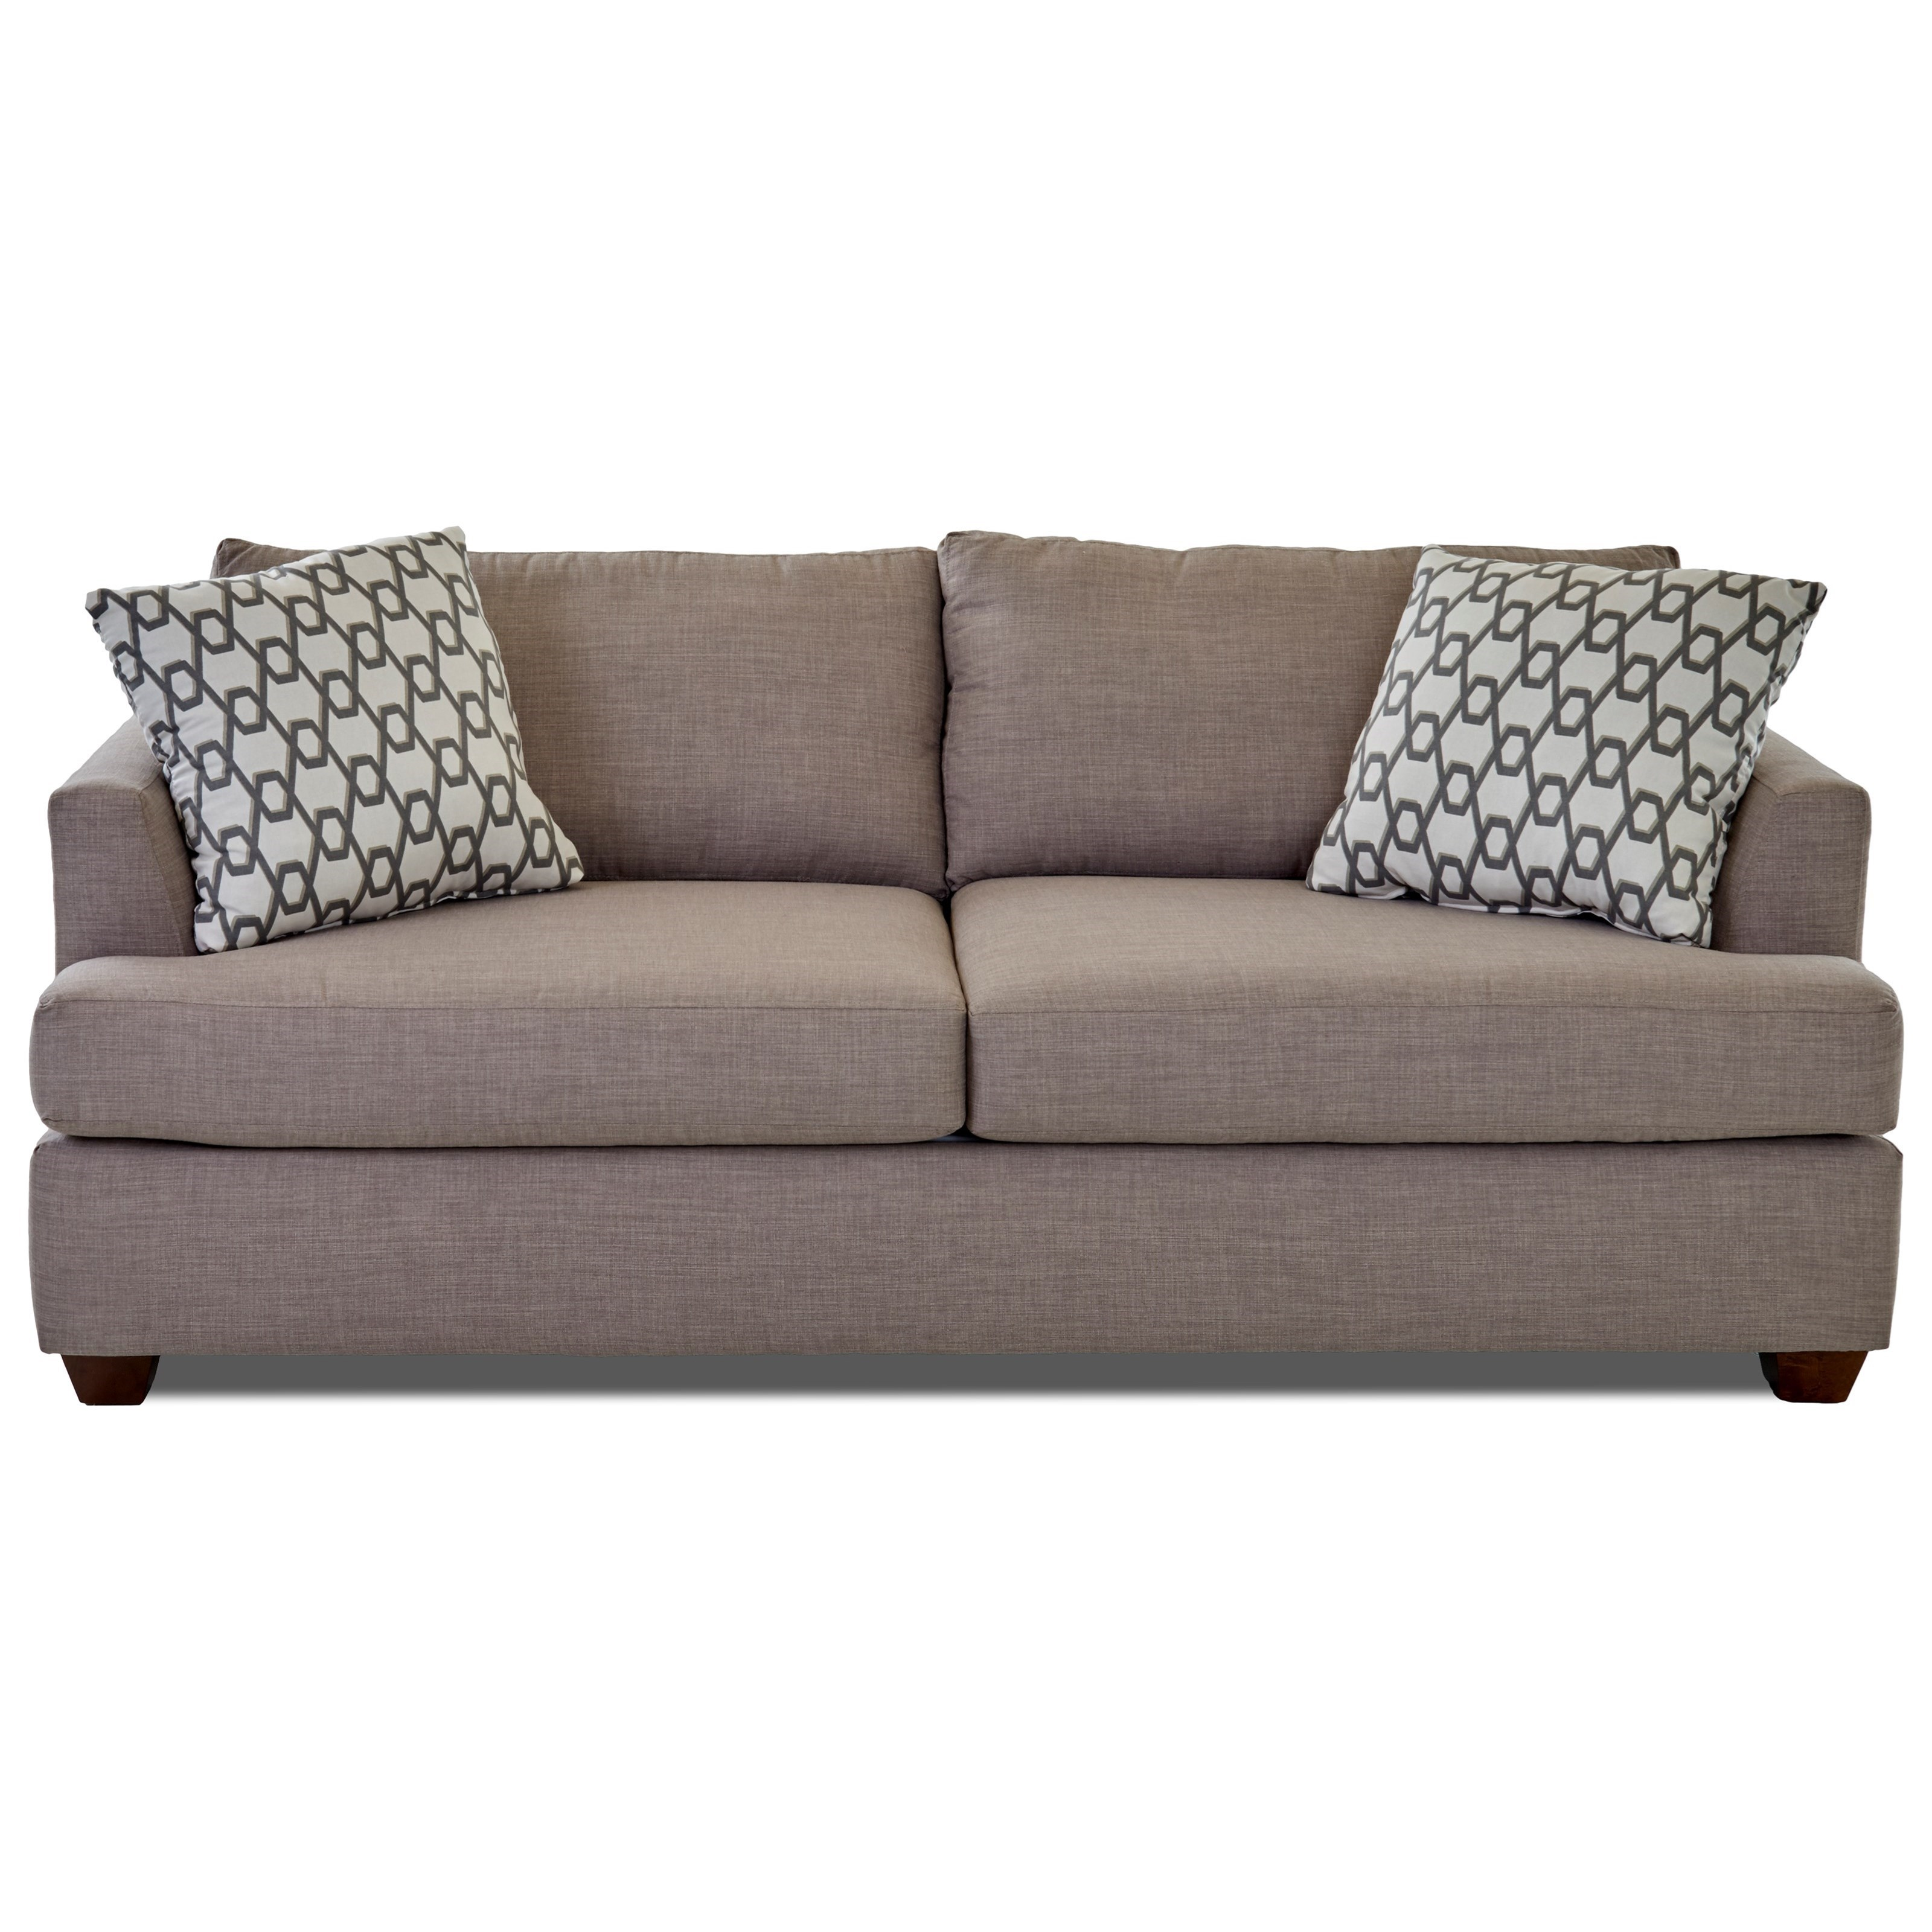 Klaussner Jack Dreamquest Queen Sleeper Sofa - Item Number: K49500 DQSL-FANDSTON